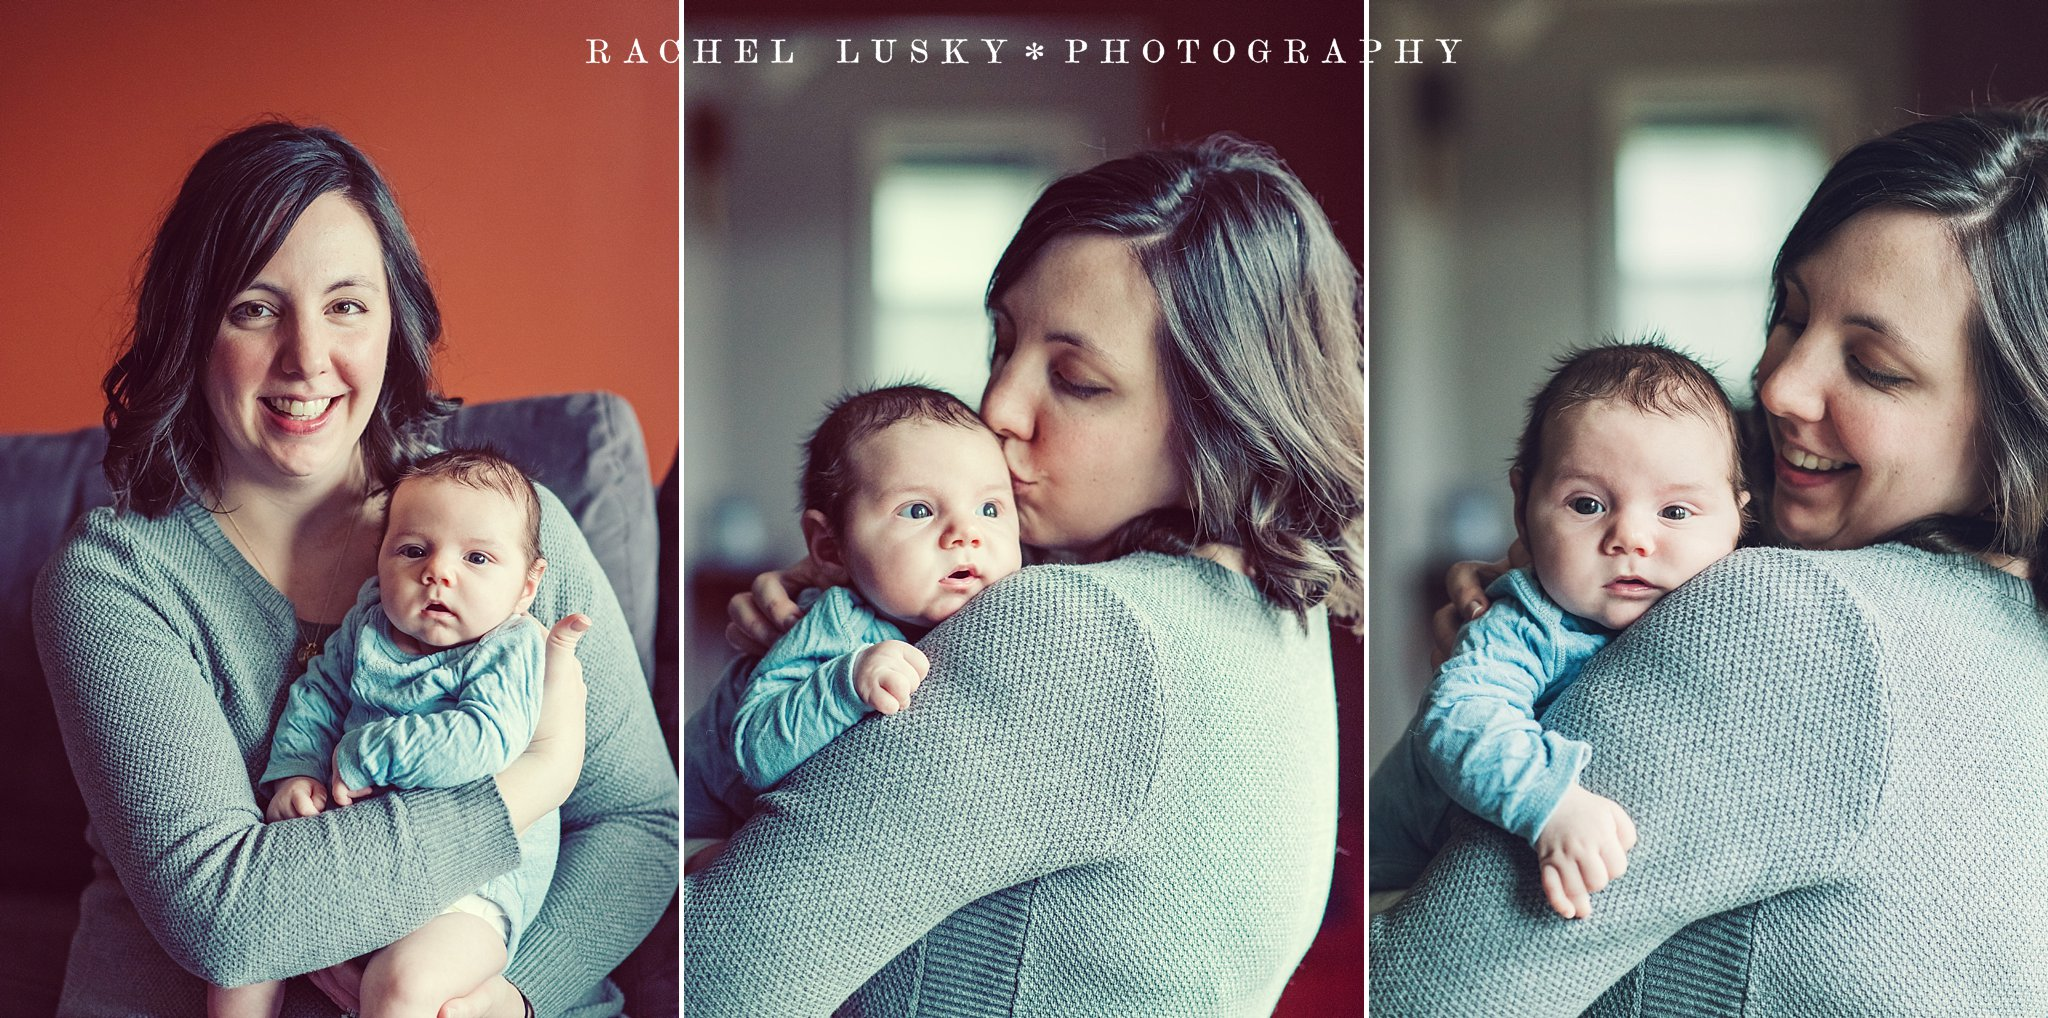 2 month old baby, Pittsburgh PA Photographer